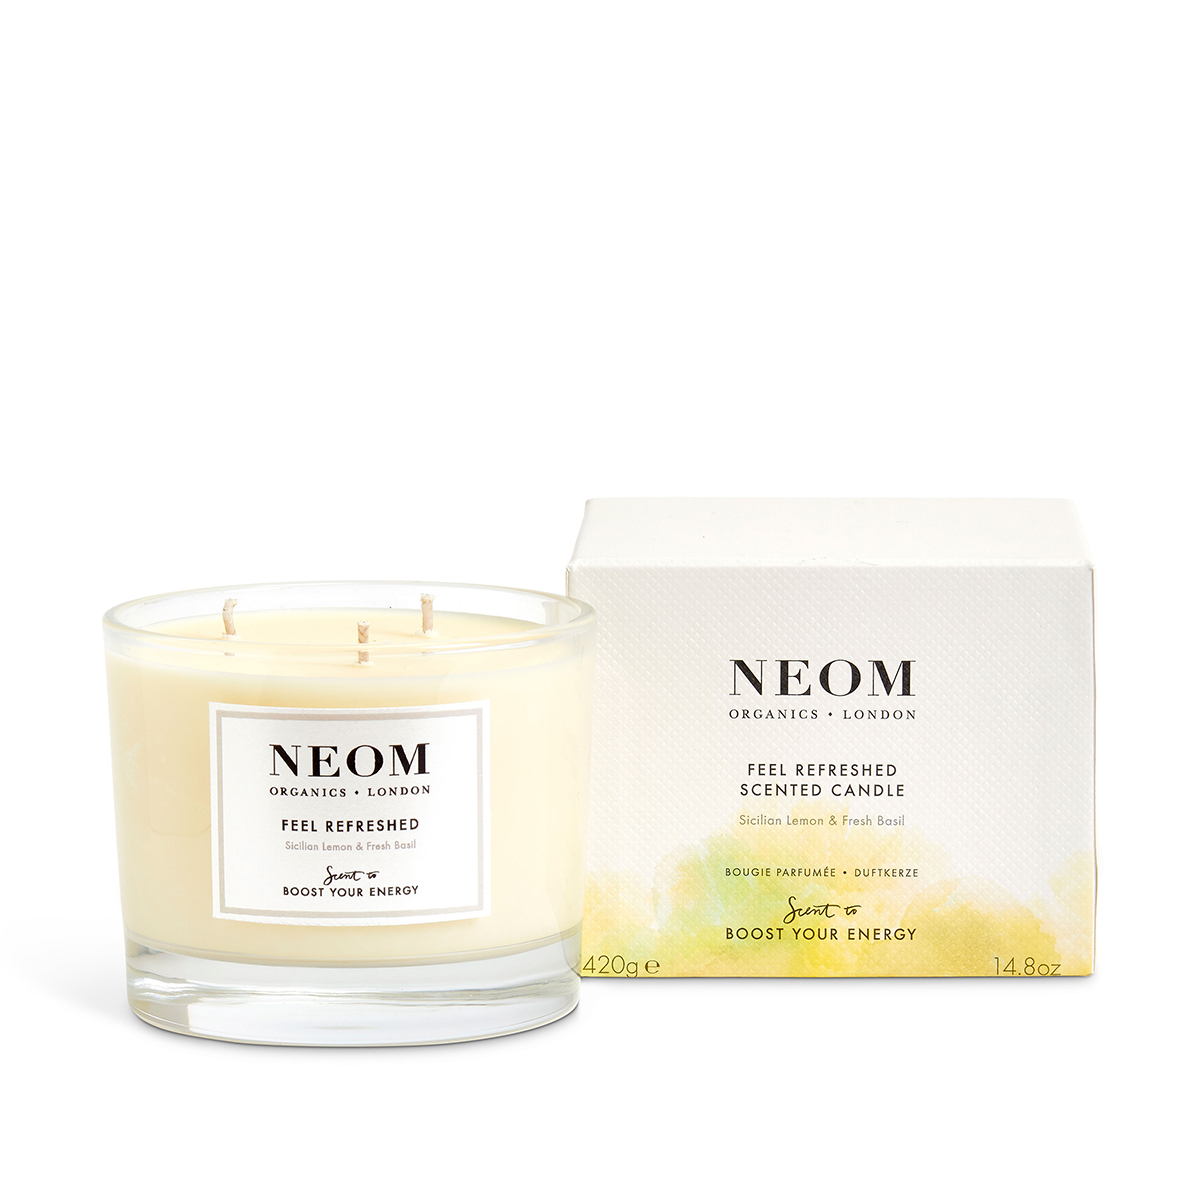 FEEL REFRESHED SCENTED CANDLE (3 WICK)